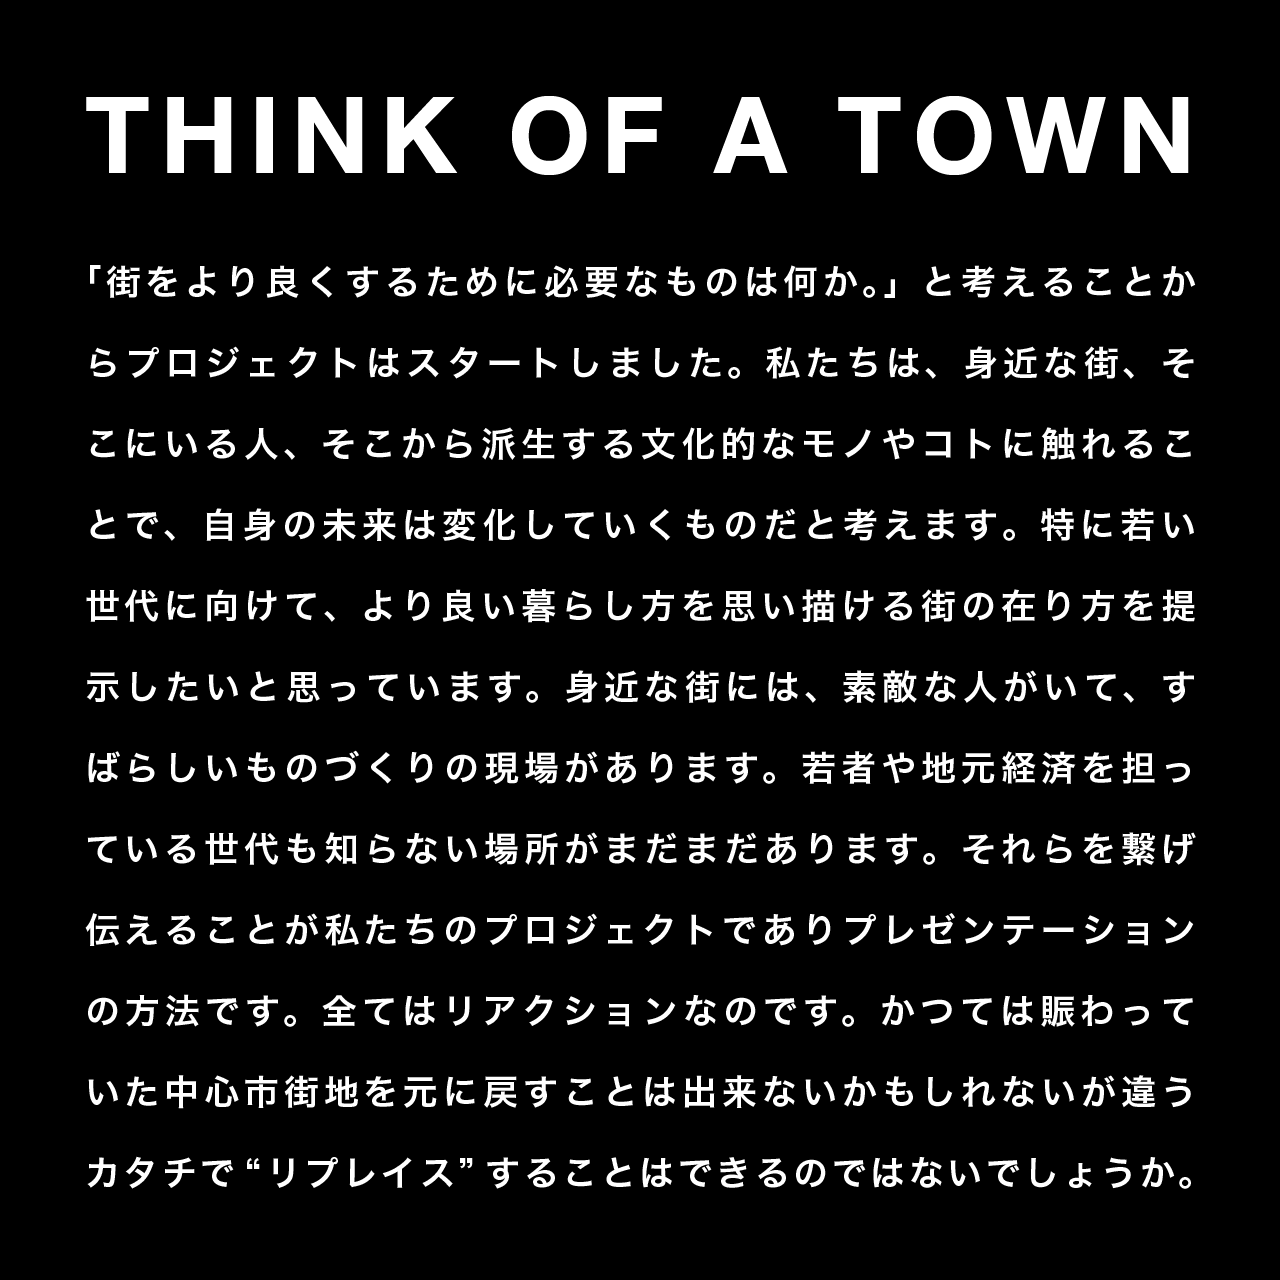 THINK OF A TOWN